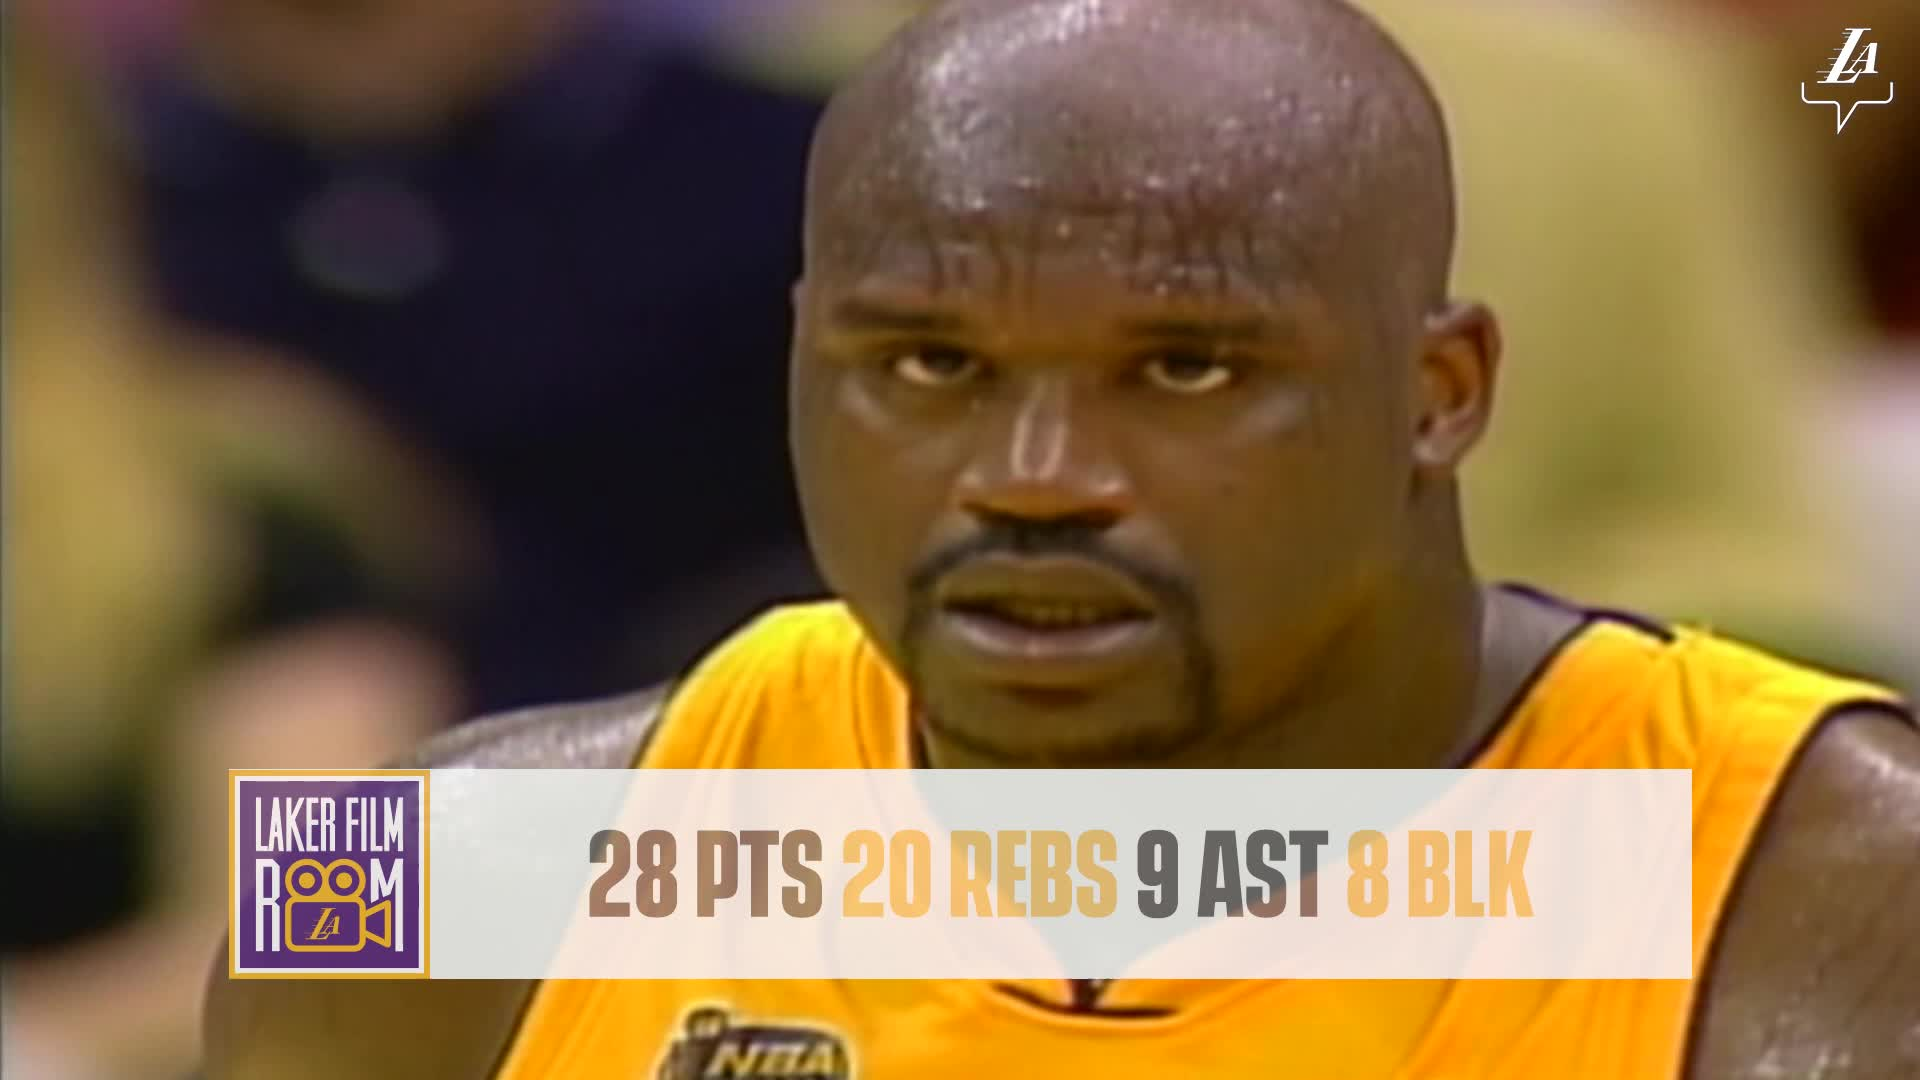 Laker Film Room: Greatest Lakers Games - Shaq in 2001 NBA Finals Game 2